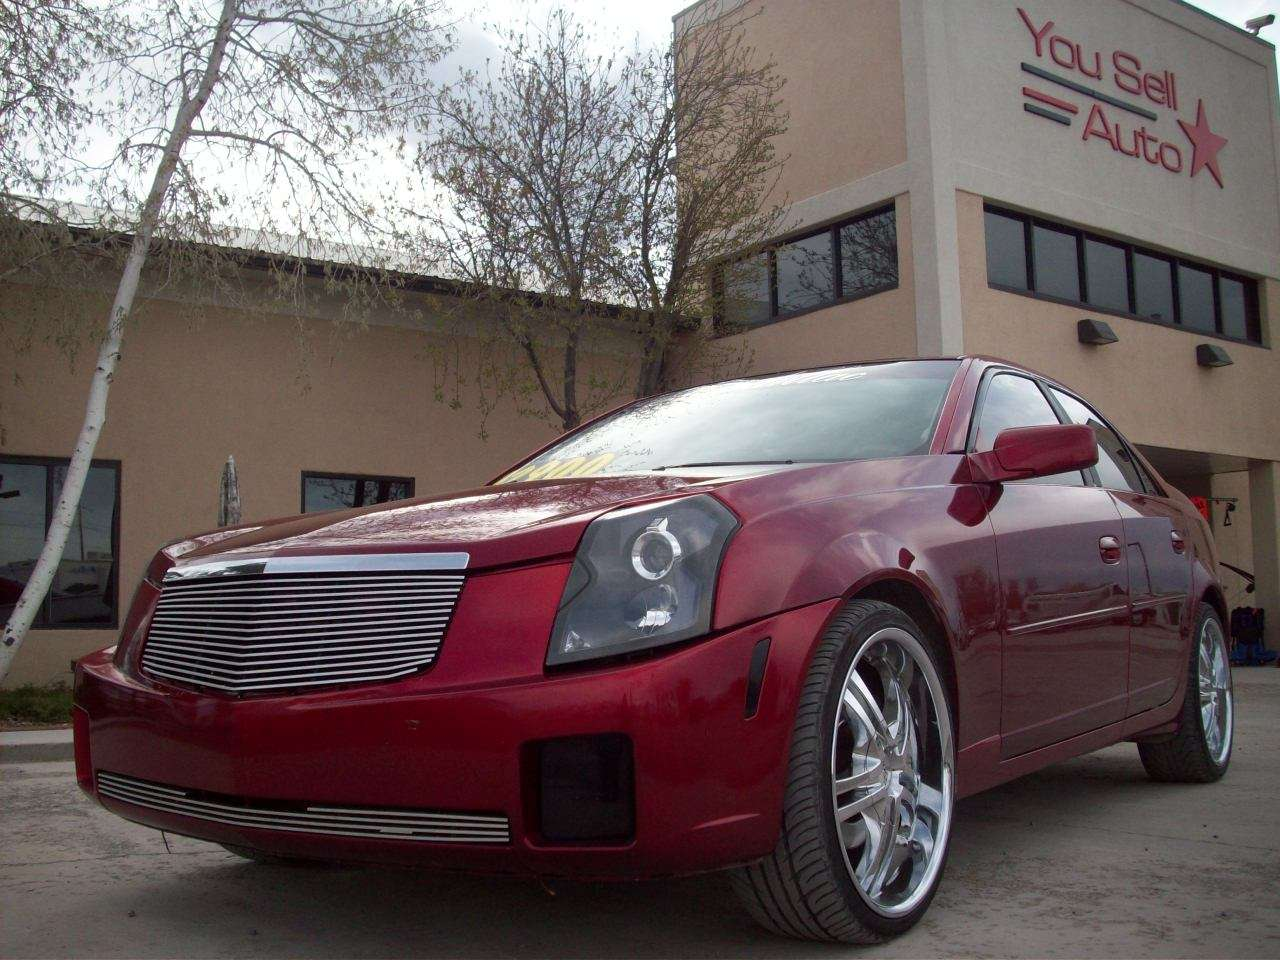 2003 cadillac cts luxury 12 900 you sell auto. Black Bedroom Furniture Sets. Home Design Ideas